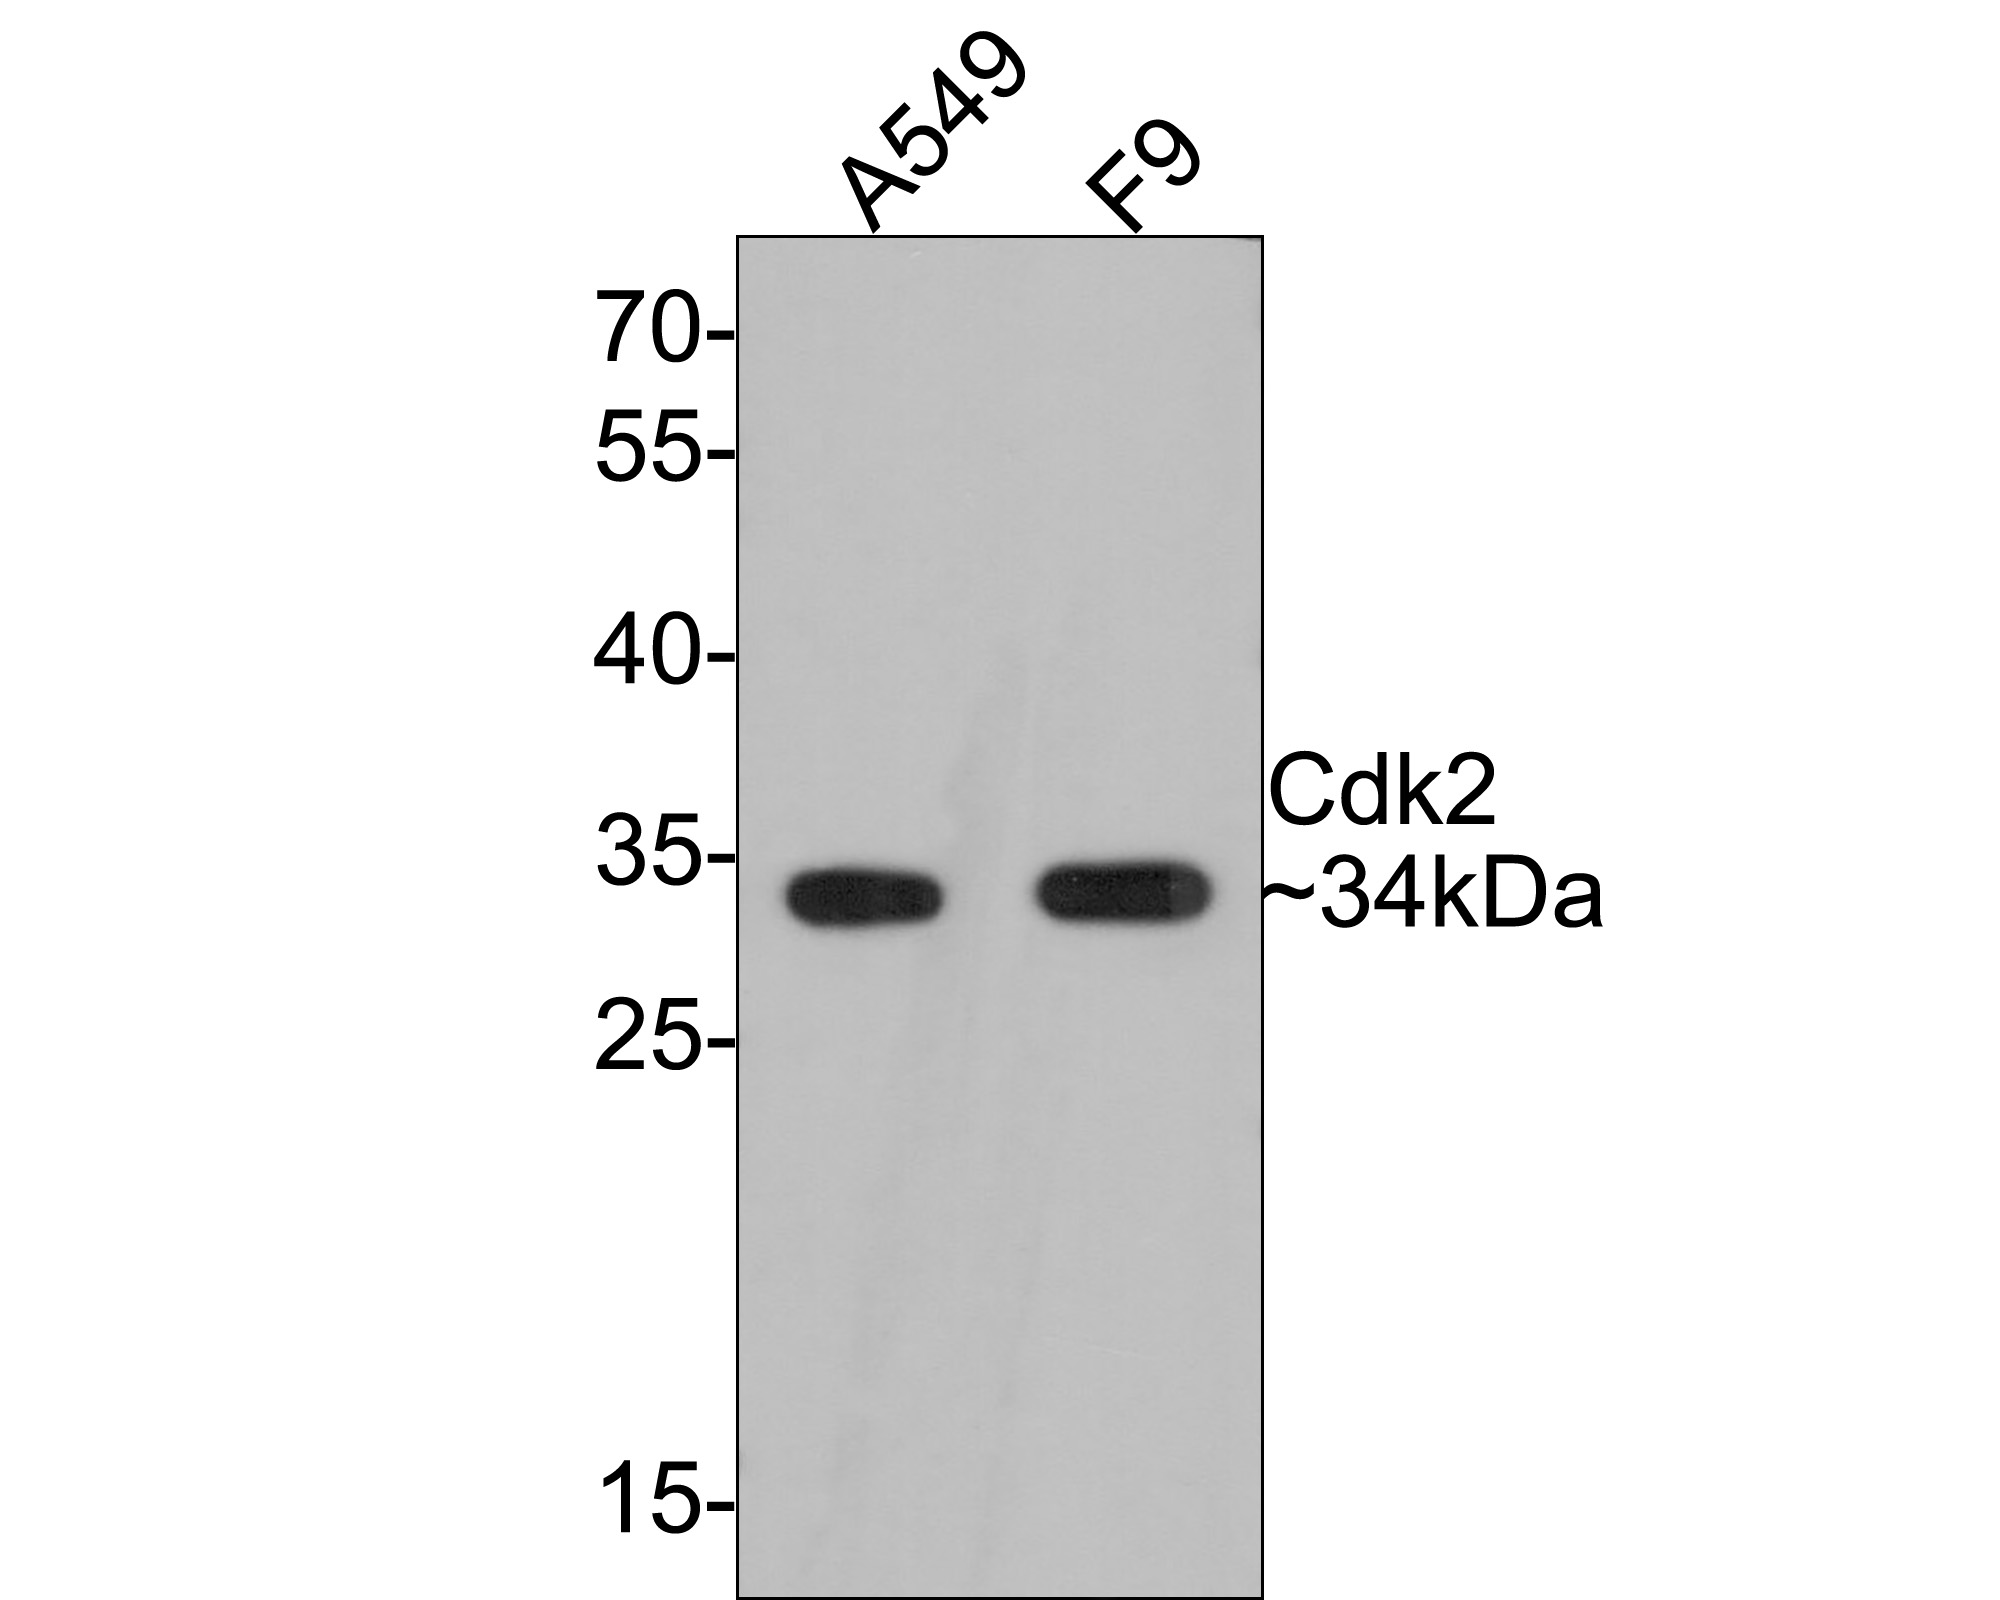 Western blot analysis of Cdk2 on different lysates. Proteins were transferred to a PVDF membrane and blocked with 5% BSA in PBS for 1 hour at room temperature. The primary antibody (ET1602-6, 1/500) was used in 5% BSA at room temperature for 2 hours. Goat Anti-Rabbit IgG - HRP Secondary Antibody (HA1001) at 1:5,000 dilution was used for 1 hour at room temperature. Positive control:  Lane 1: A549 cell lysate Lane 2: F9 cell lysate